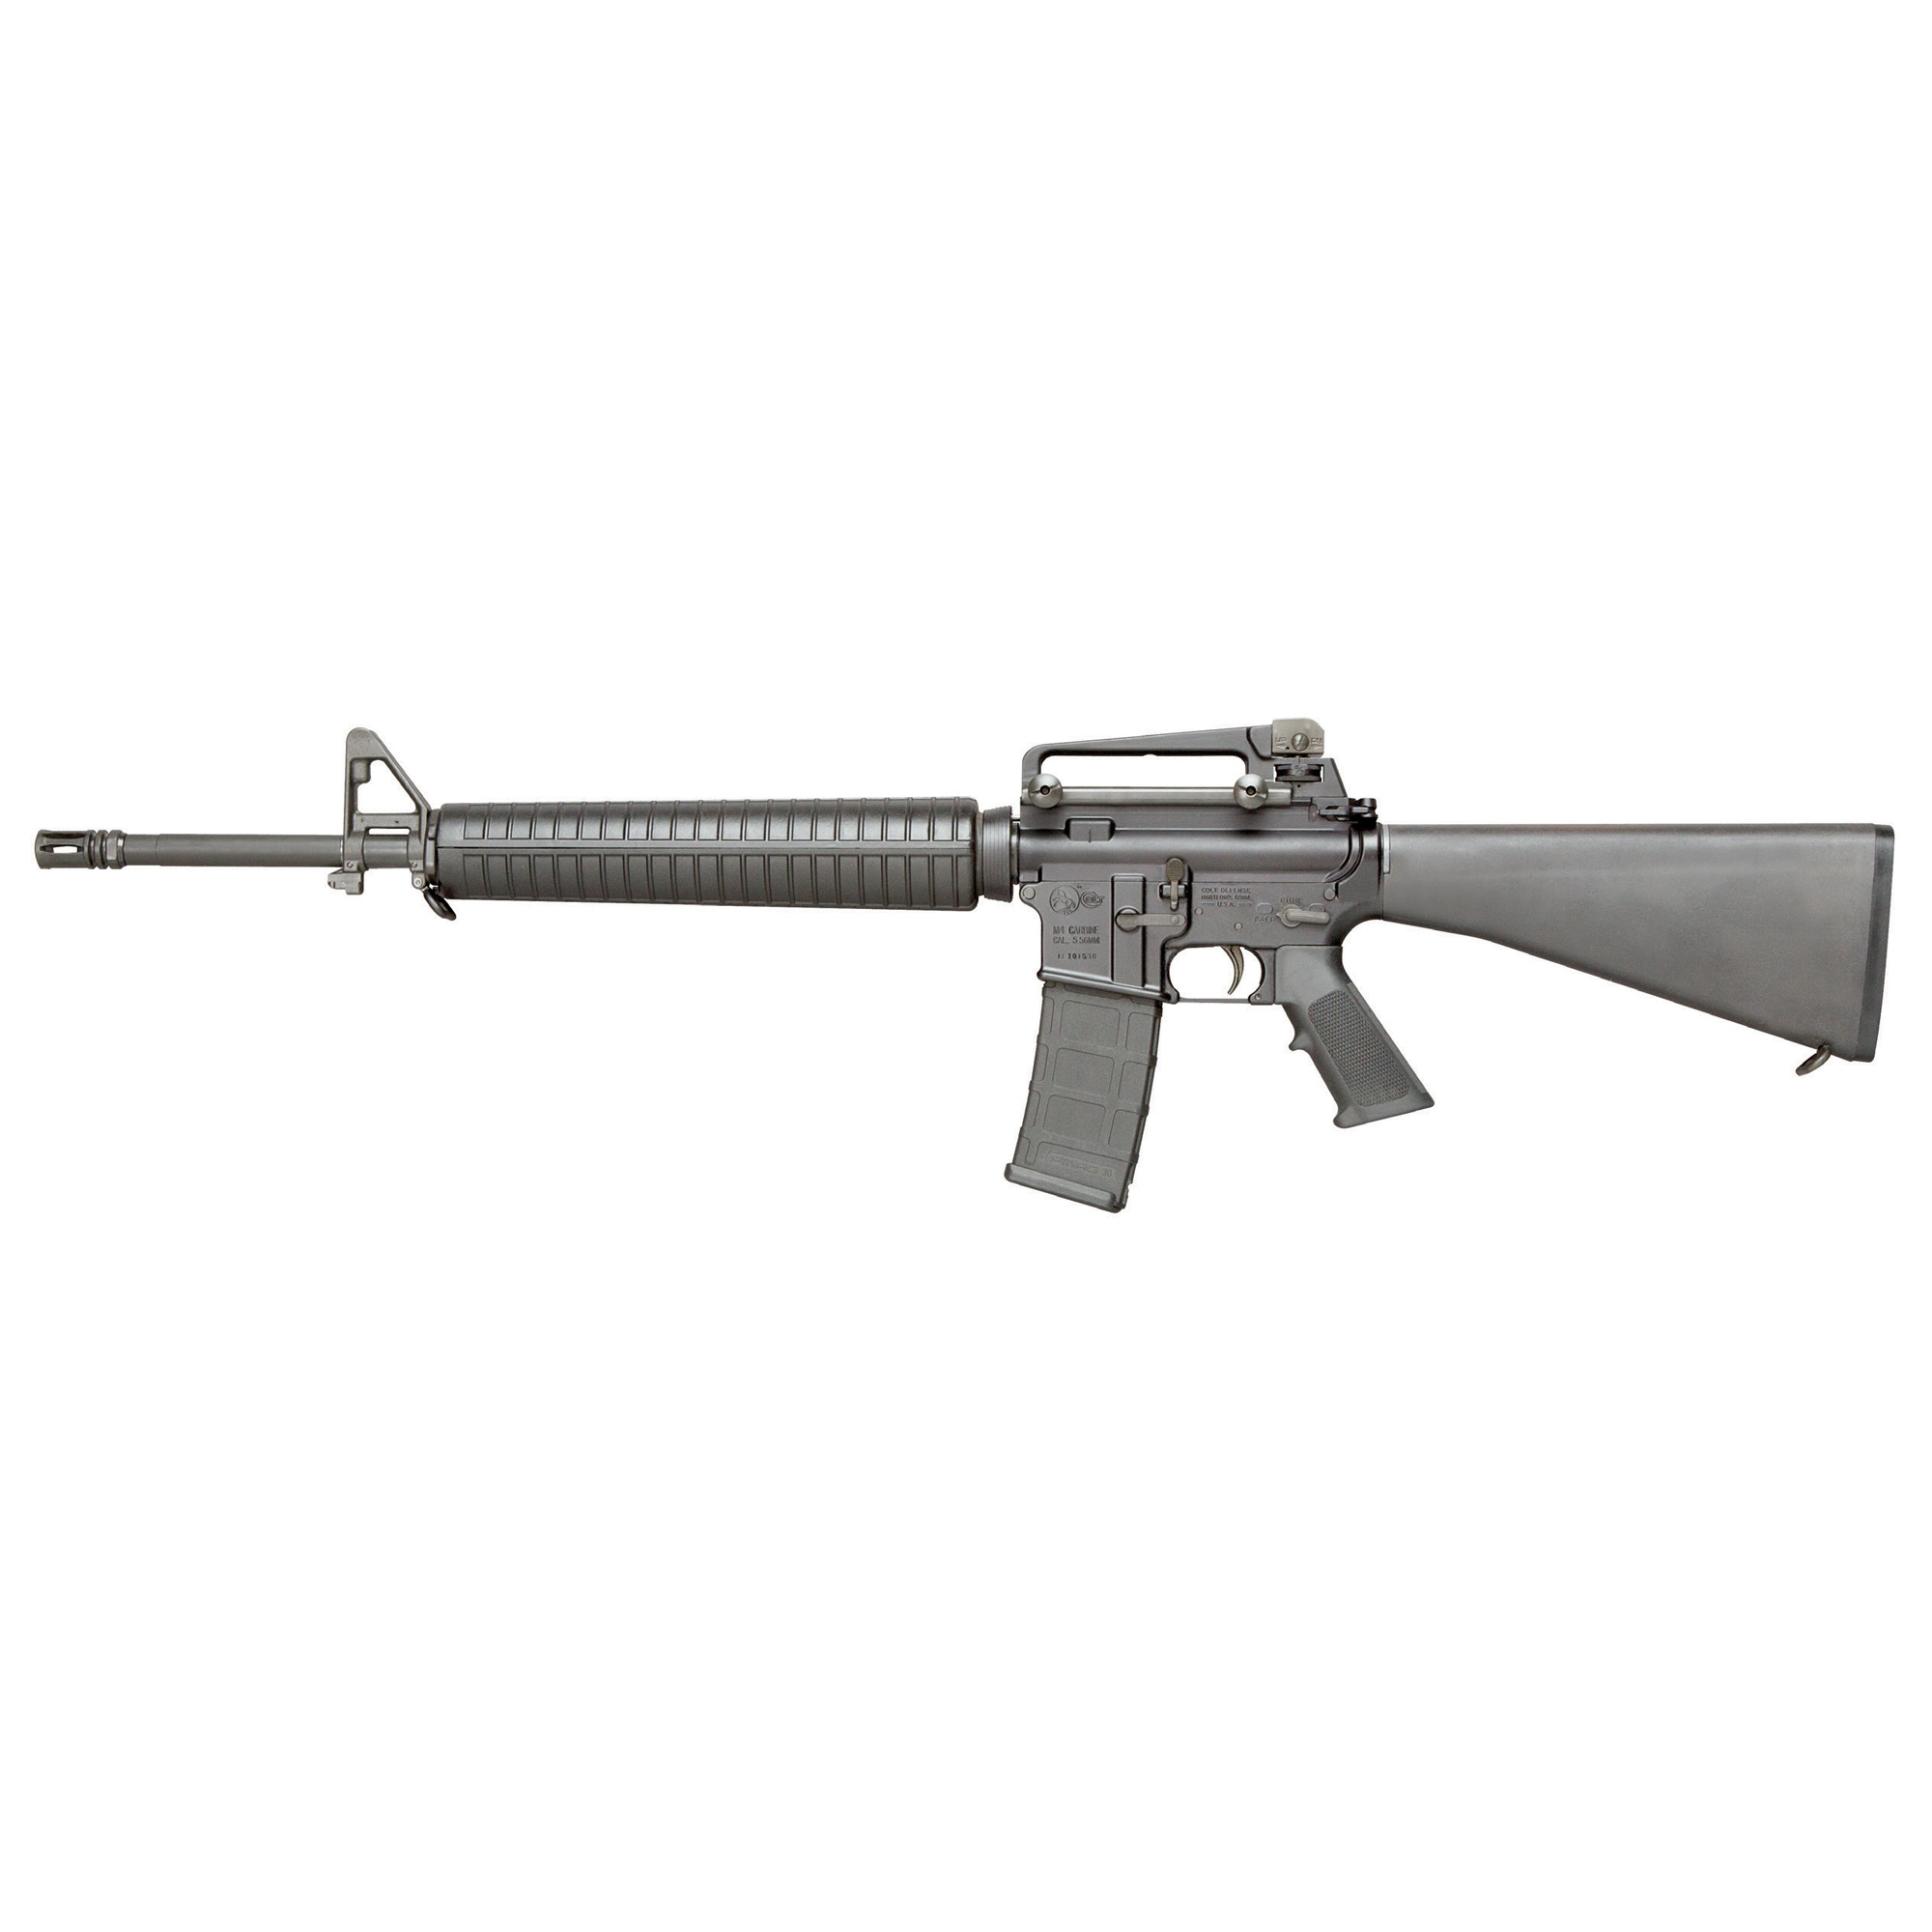 "This Semi-Automatic Colt Rifle is a throwback to the full size AR-15(R) which gave birth to the Modern Sporting Rifle. The AR15A4 is defined by it's 20"" 1:7 Twist Government Profile Chrome Lined Barrel and A2 Fixed Buttstock. The rifle is topped with a Picatinny Flat Top Upper Receiver with Detachable Carry Handle."